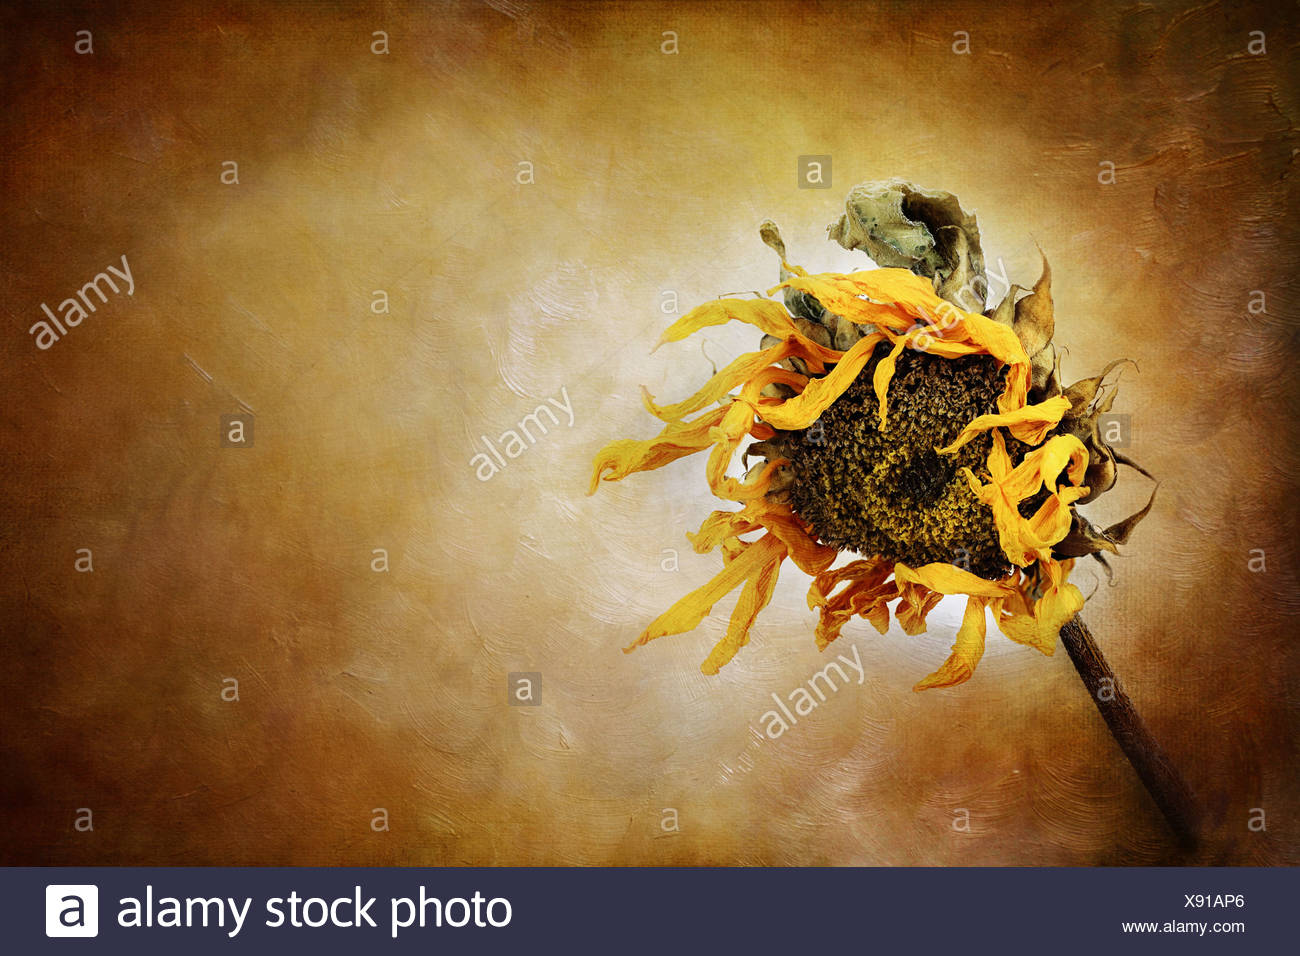 Dried sunflower with painterly effect. - Stock Image